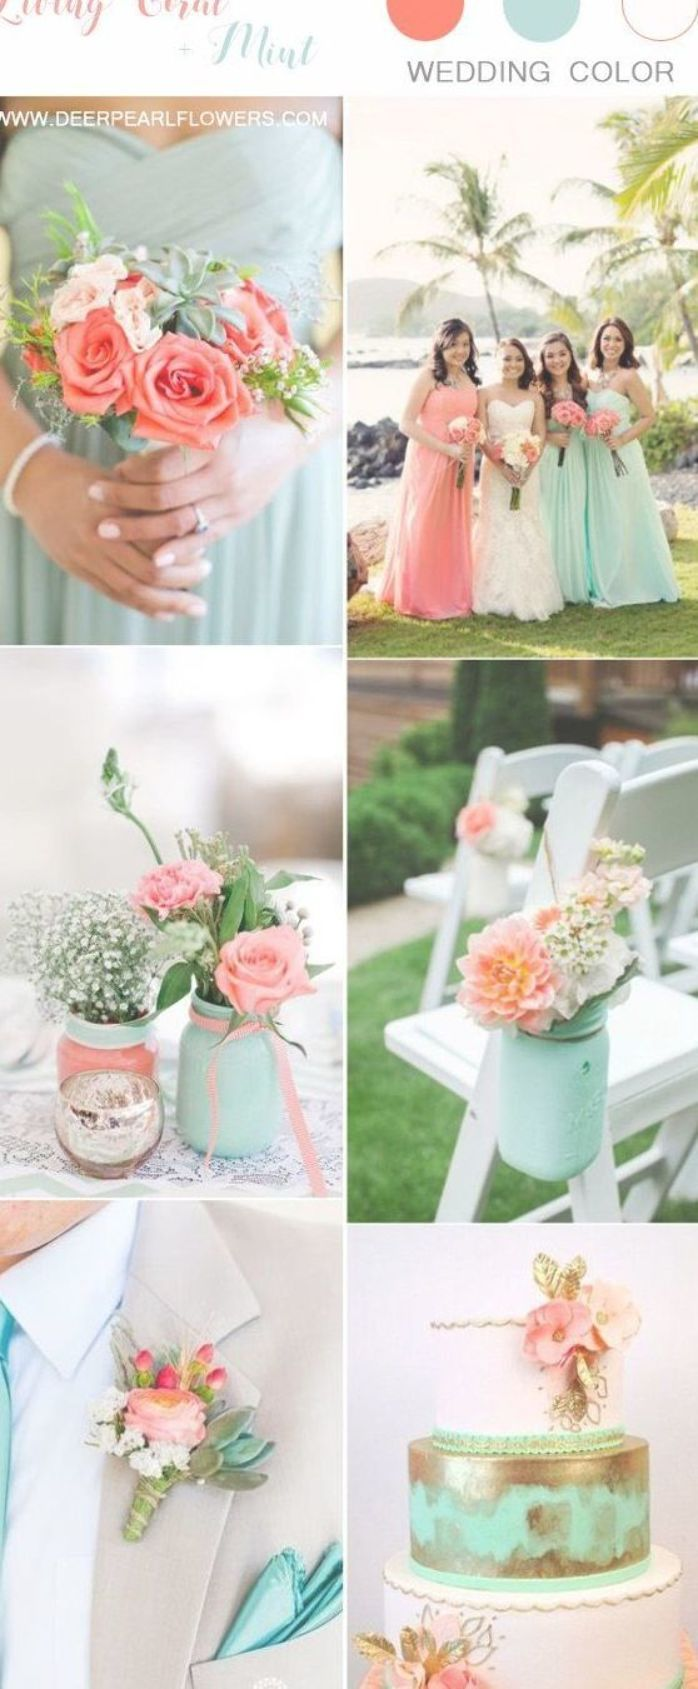 Coral And Mint Green Wedding Color Ideas Wedding Weddings Weddingcolors Weddingideas Deerpear Wedding Mint Green Coral Wedding Colors Coral Wedding Themes